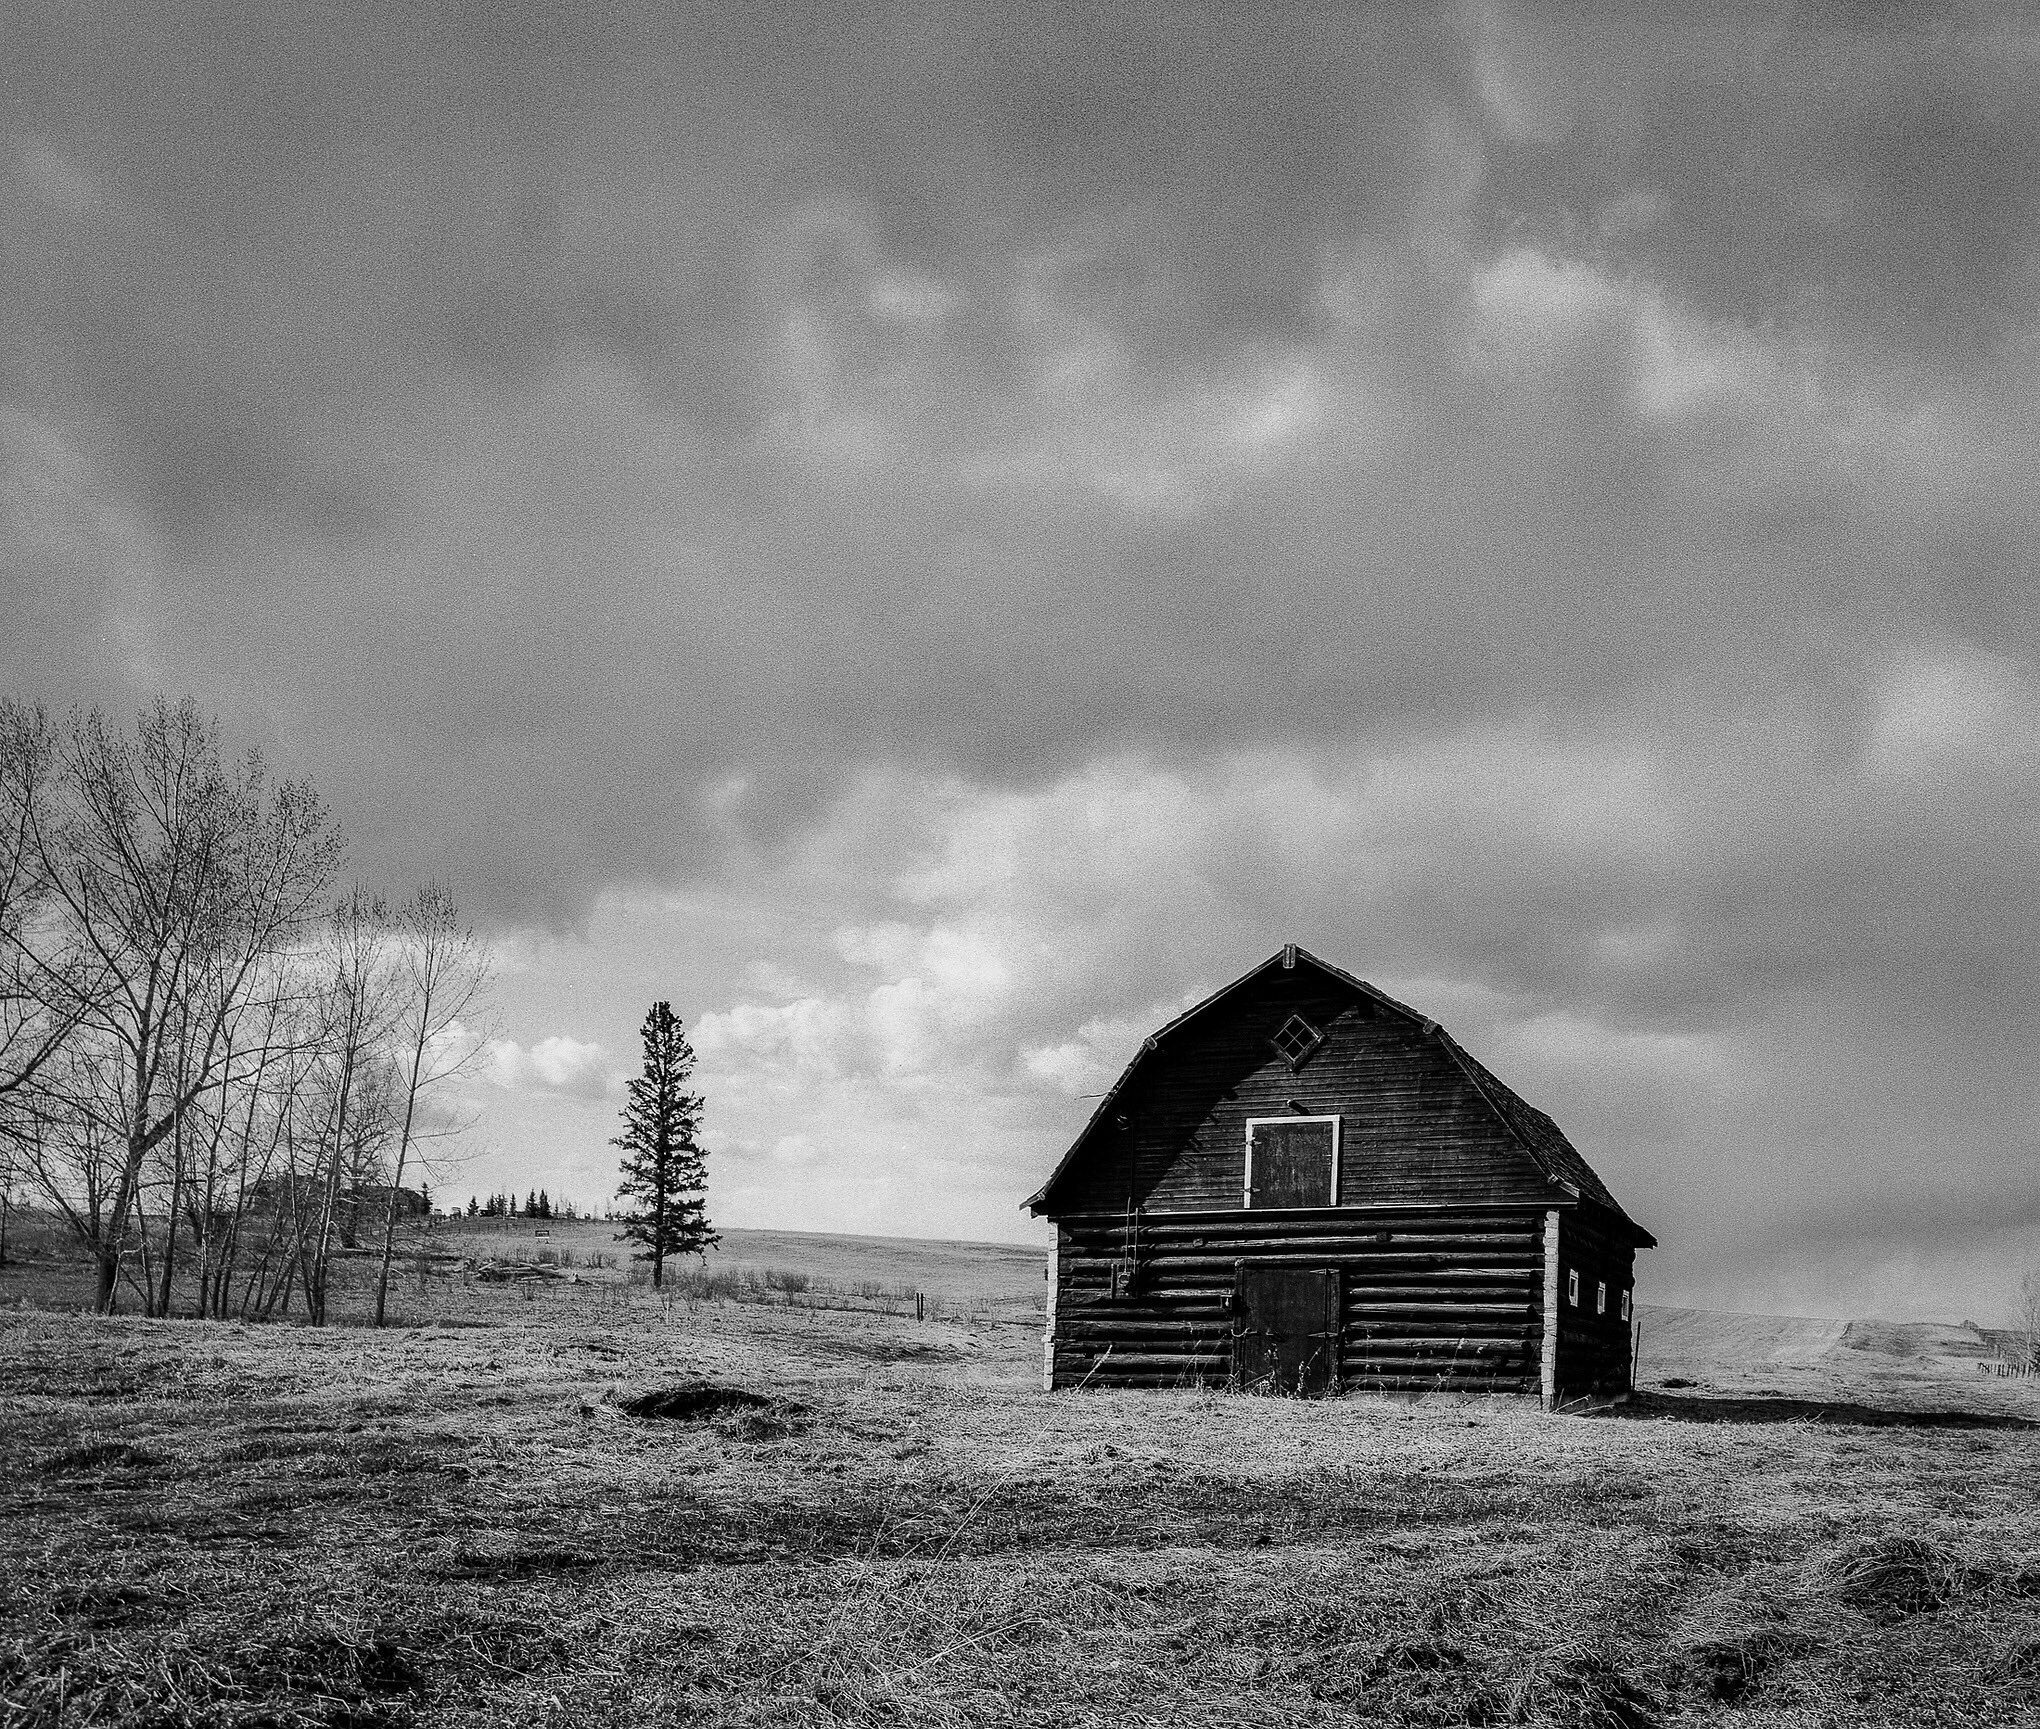 @JeremyCalow Untitled Barn I really love how the #ilfordortho rendered this bright red barn with no filters added. #fridayfavourites #specialistfilm #believeinfilm Pentax 67 / @ILFORDPhoto Ortho plus